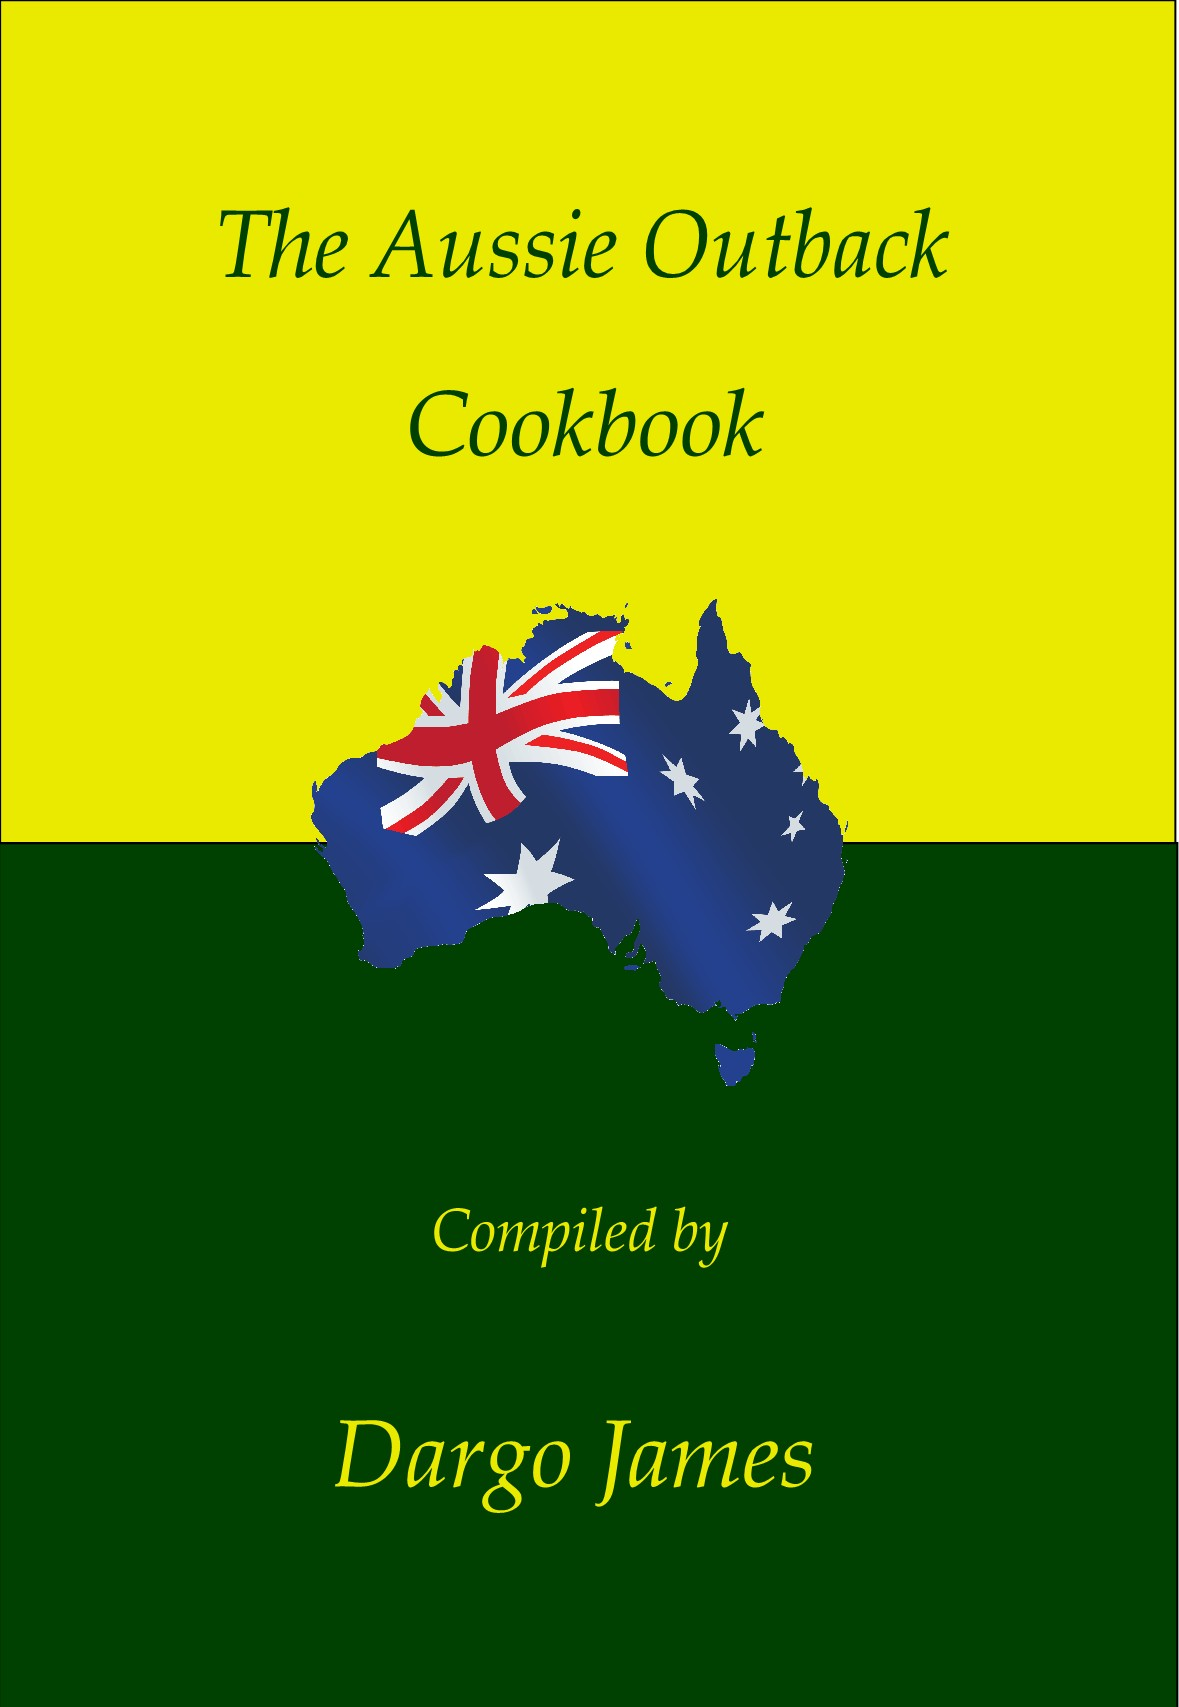 The Aussie Outback Cookbook